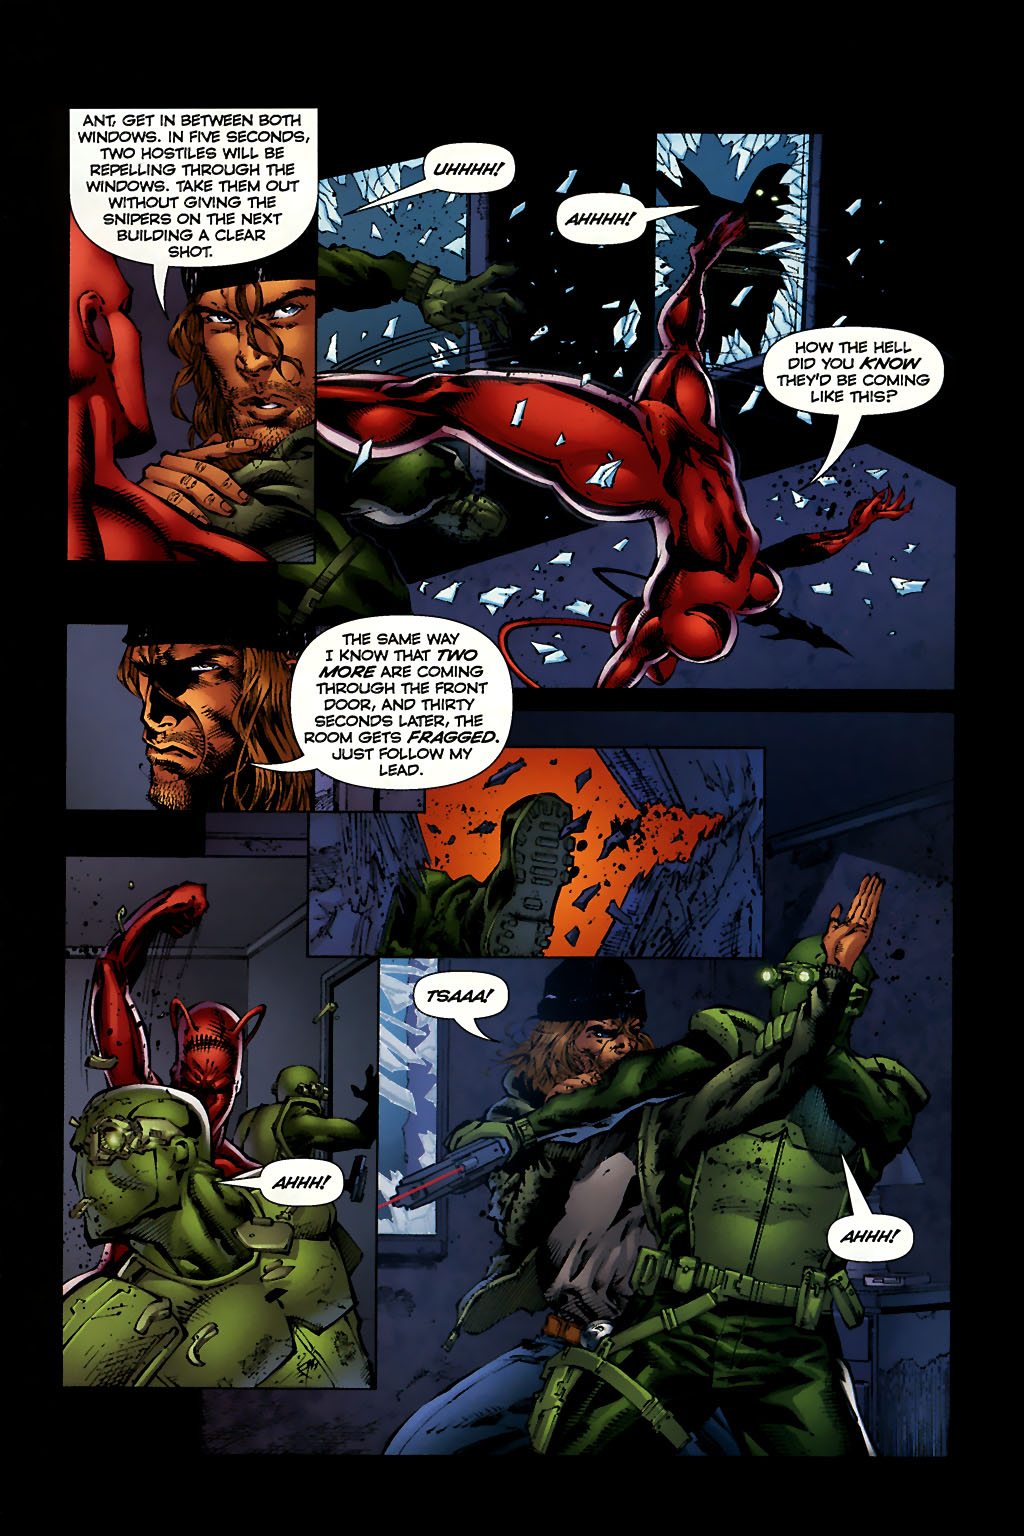 Read online Ant comic -  Issue #10 - 9